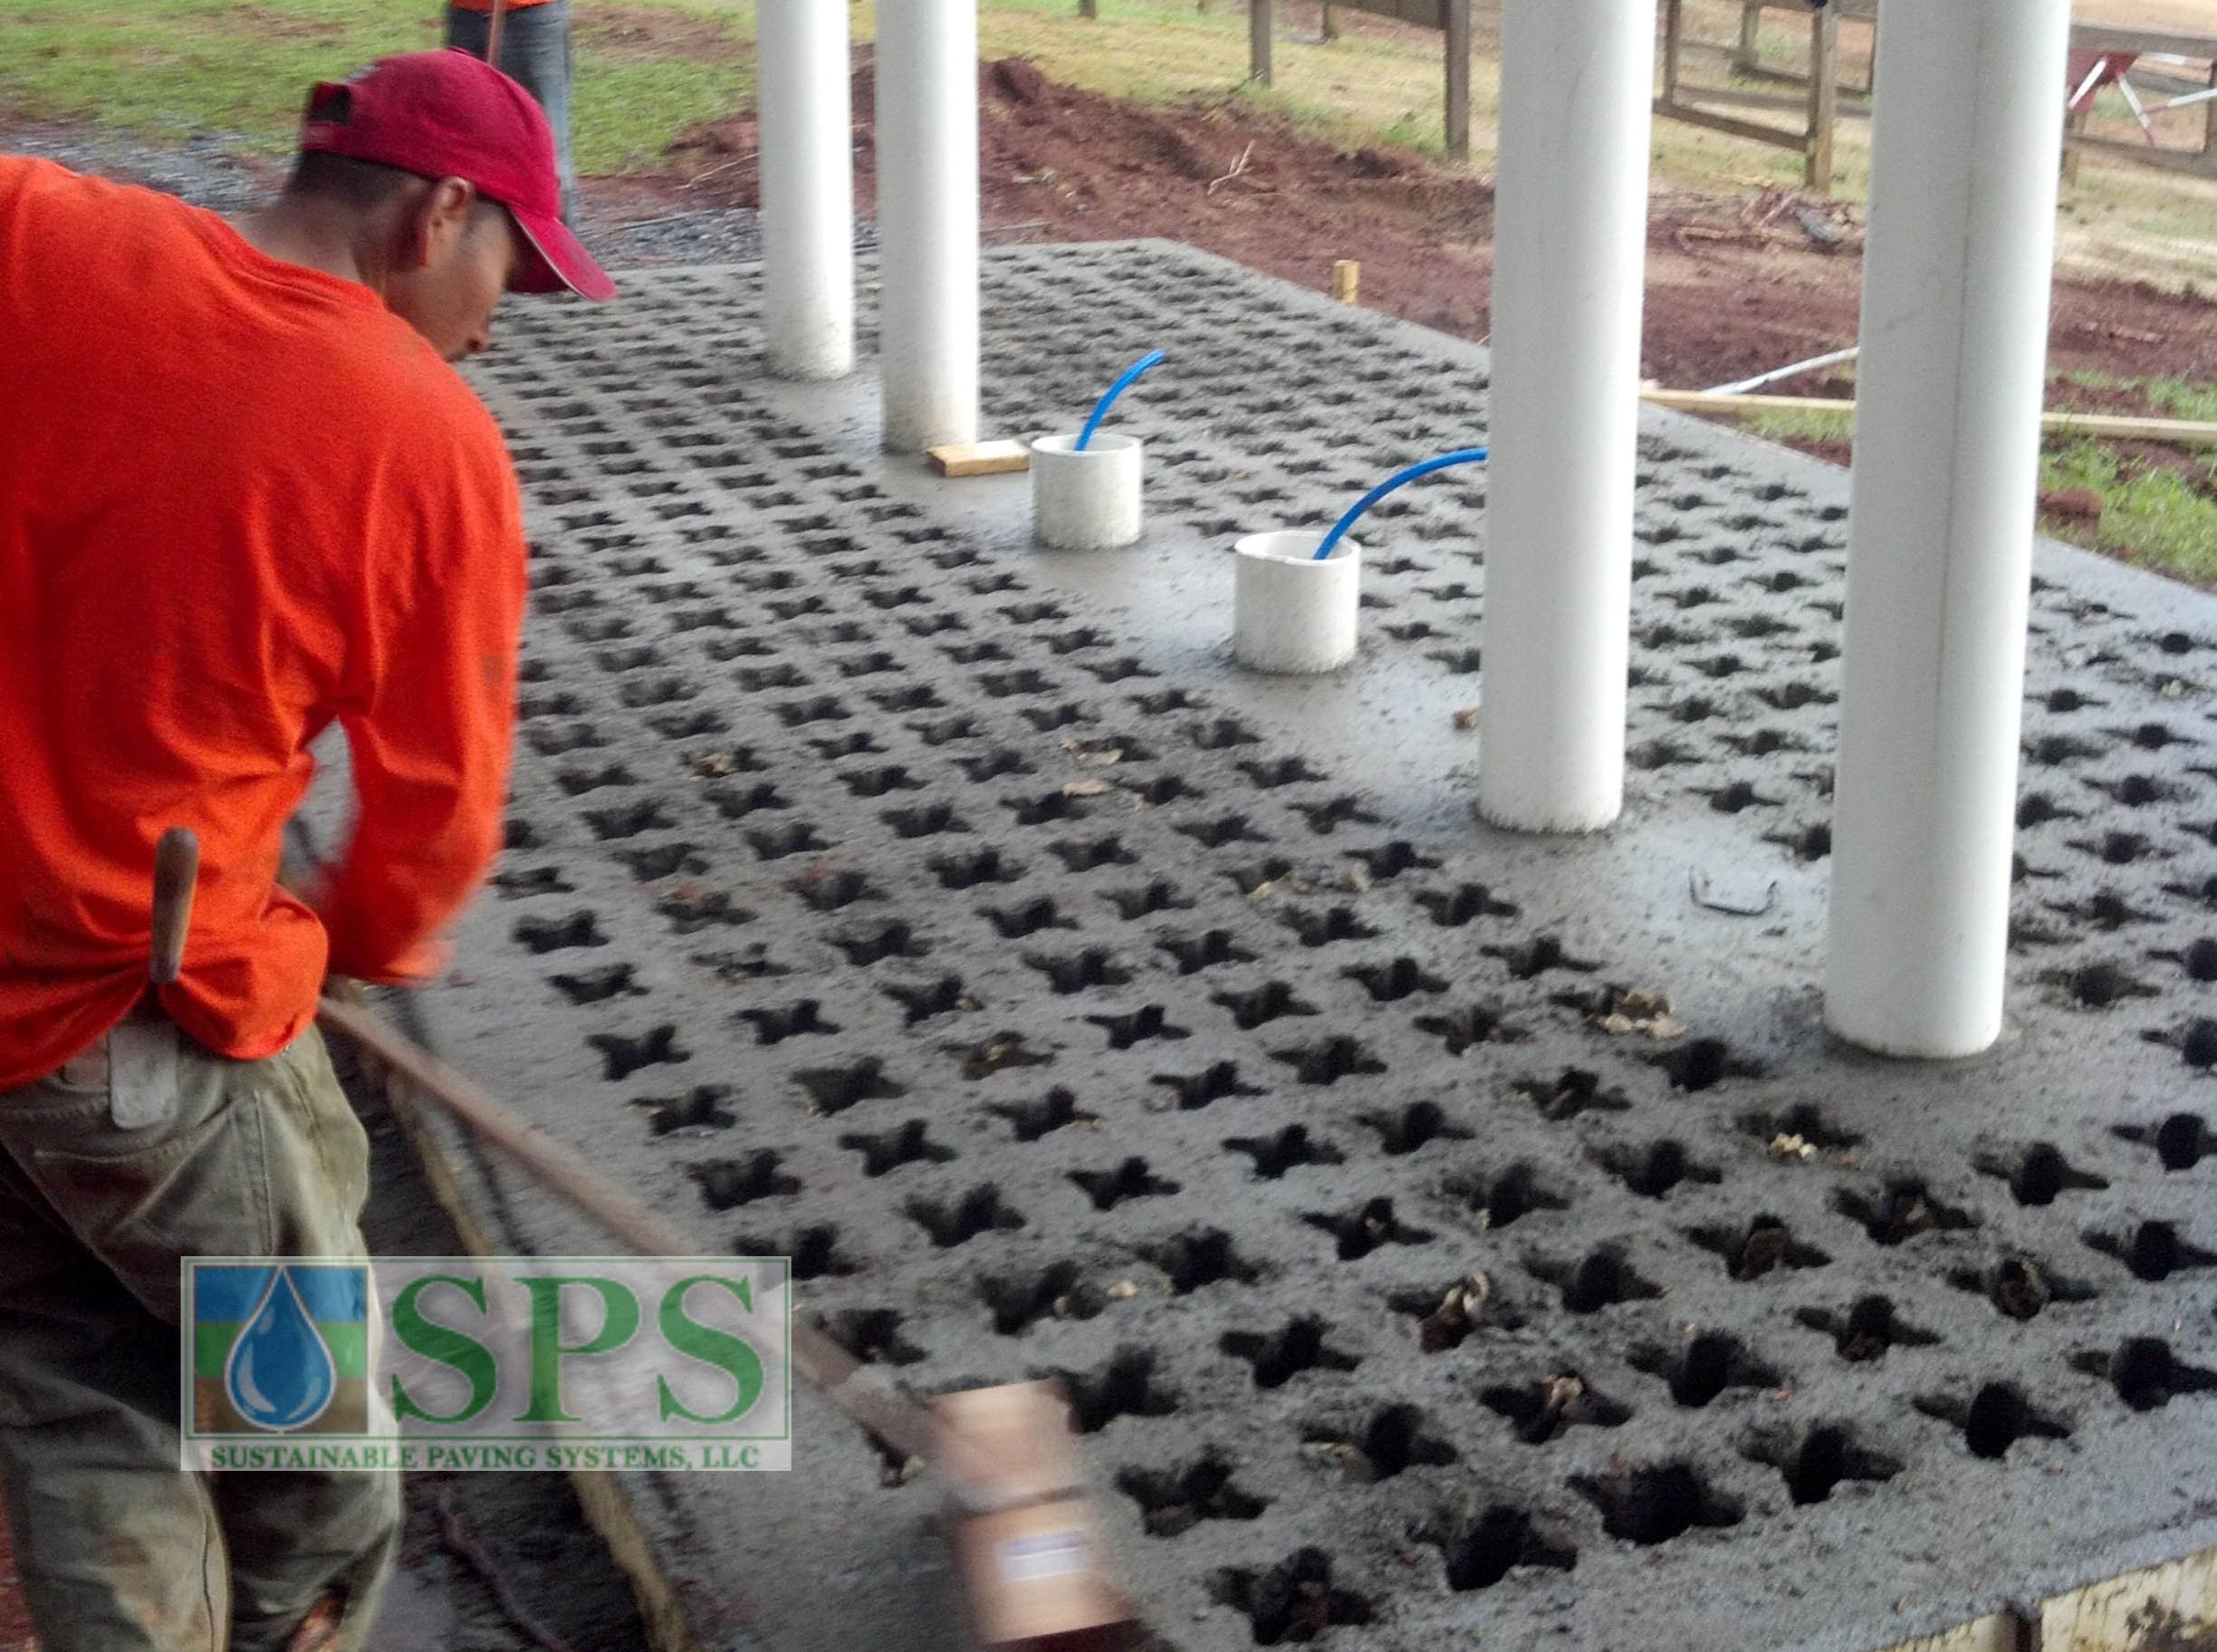 This Grasscrete base provides a positive drainage solution for this rinse station and can withstand almost non-stop water during each week at this camp.